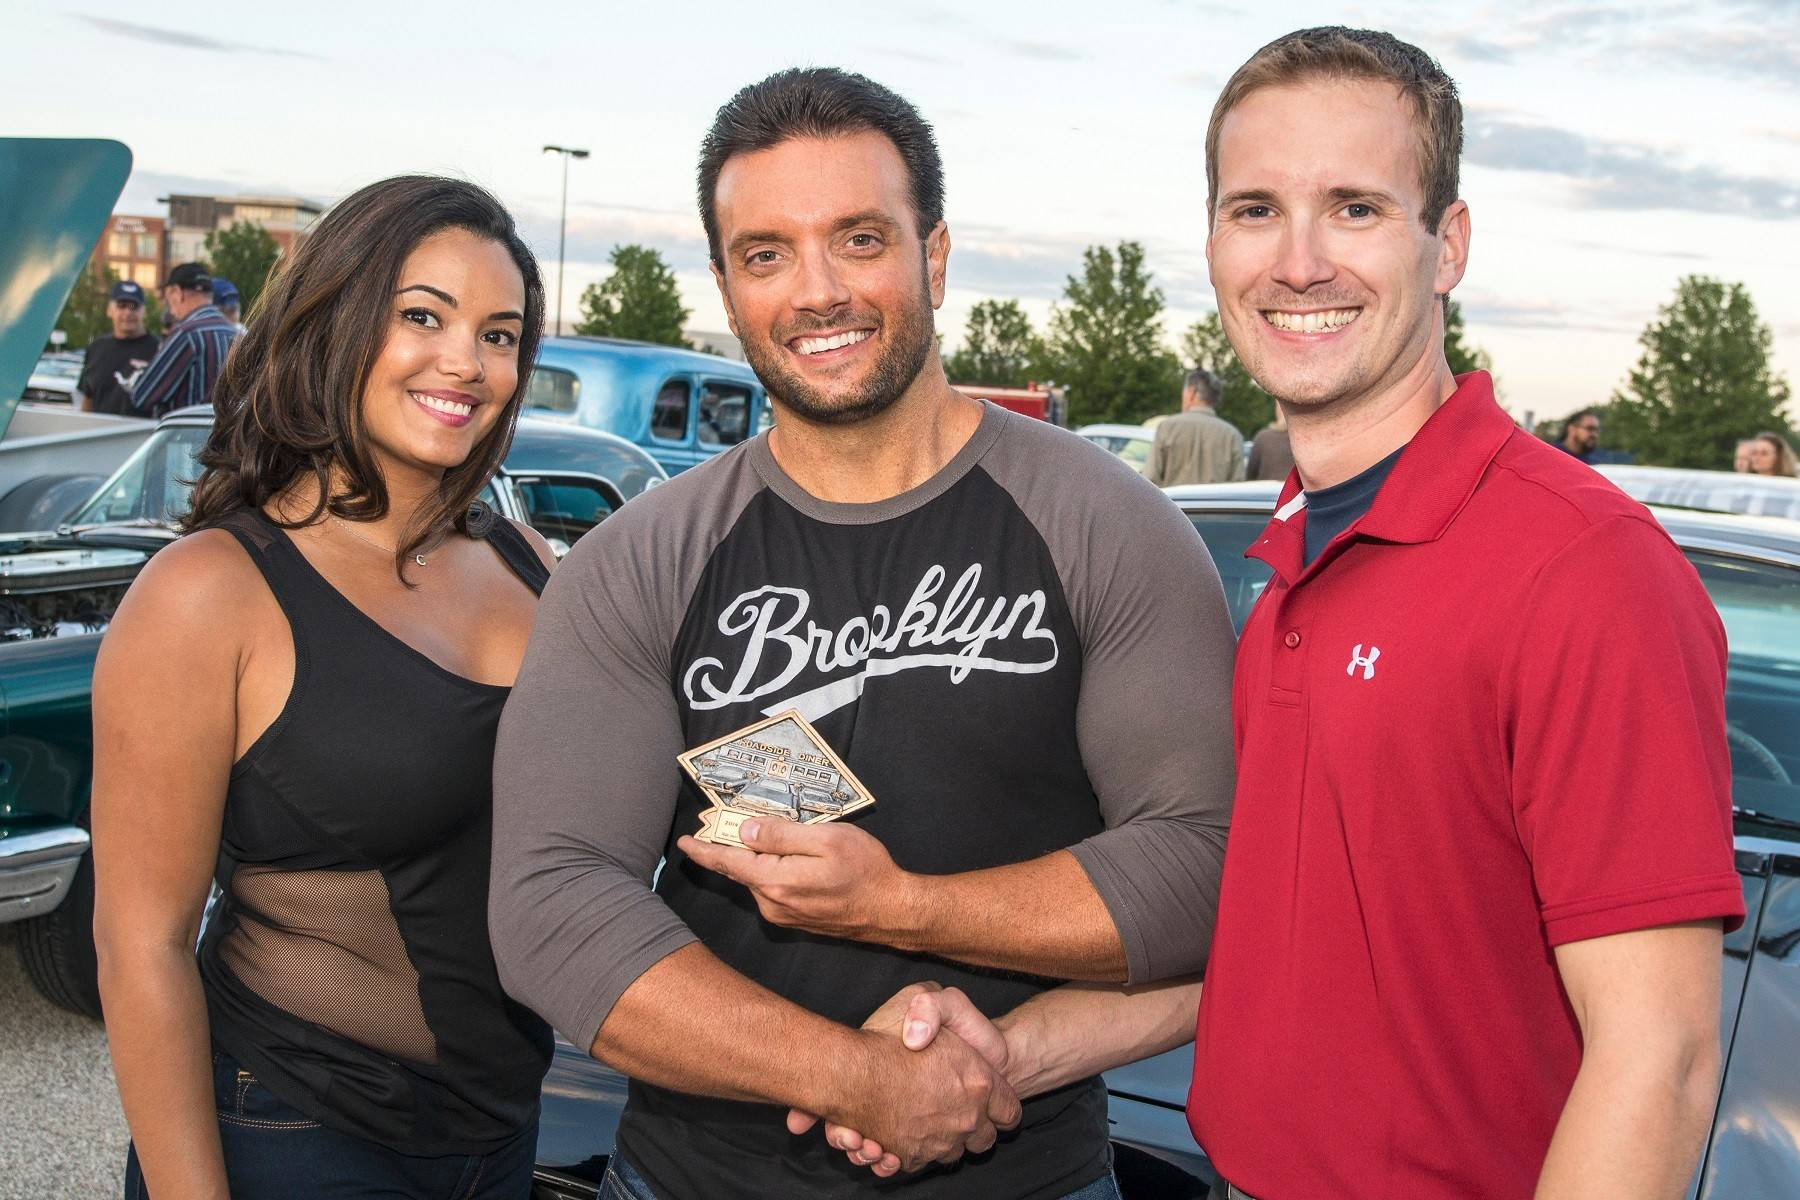 Louis Modesti of Glenview, center, and his girlfriend Christina Santiago came to the show and earned Matt Avery's Pick. Modesti shared his story of why the 1965 Lincoln Continental he drives is so special to him.